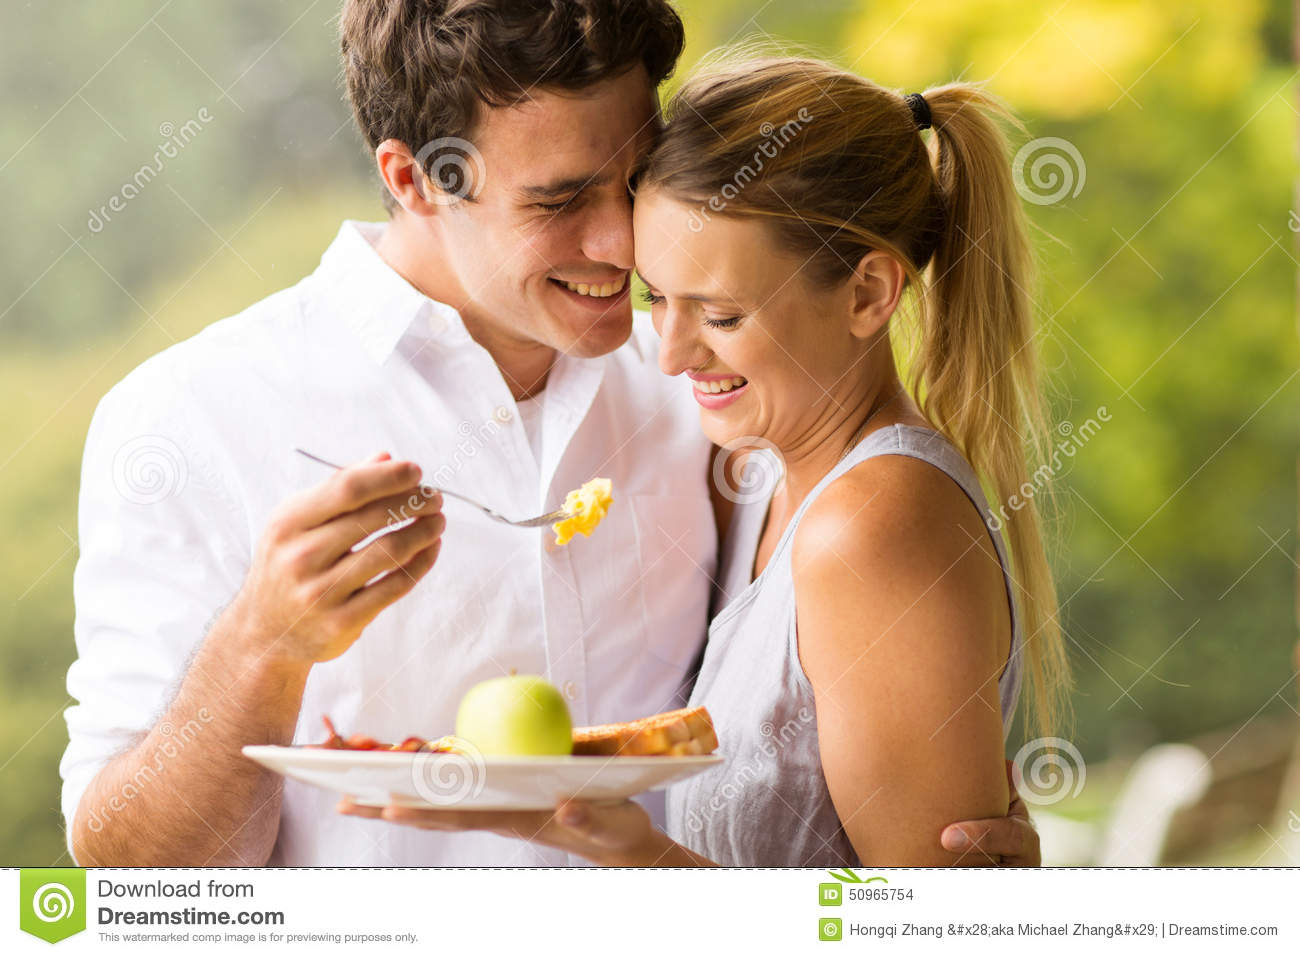 Husband Feeding Wife Breakfast Stock Images Download 251 Royalty